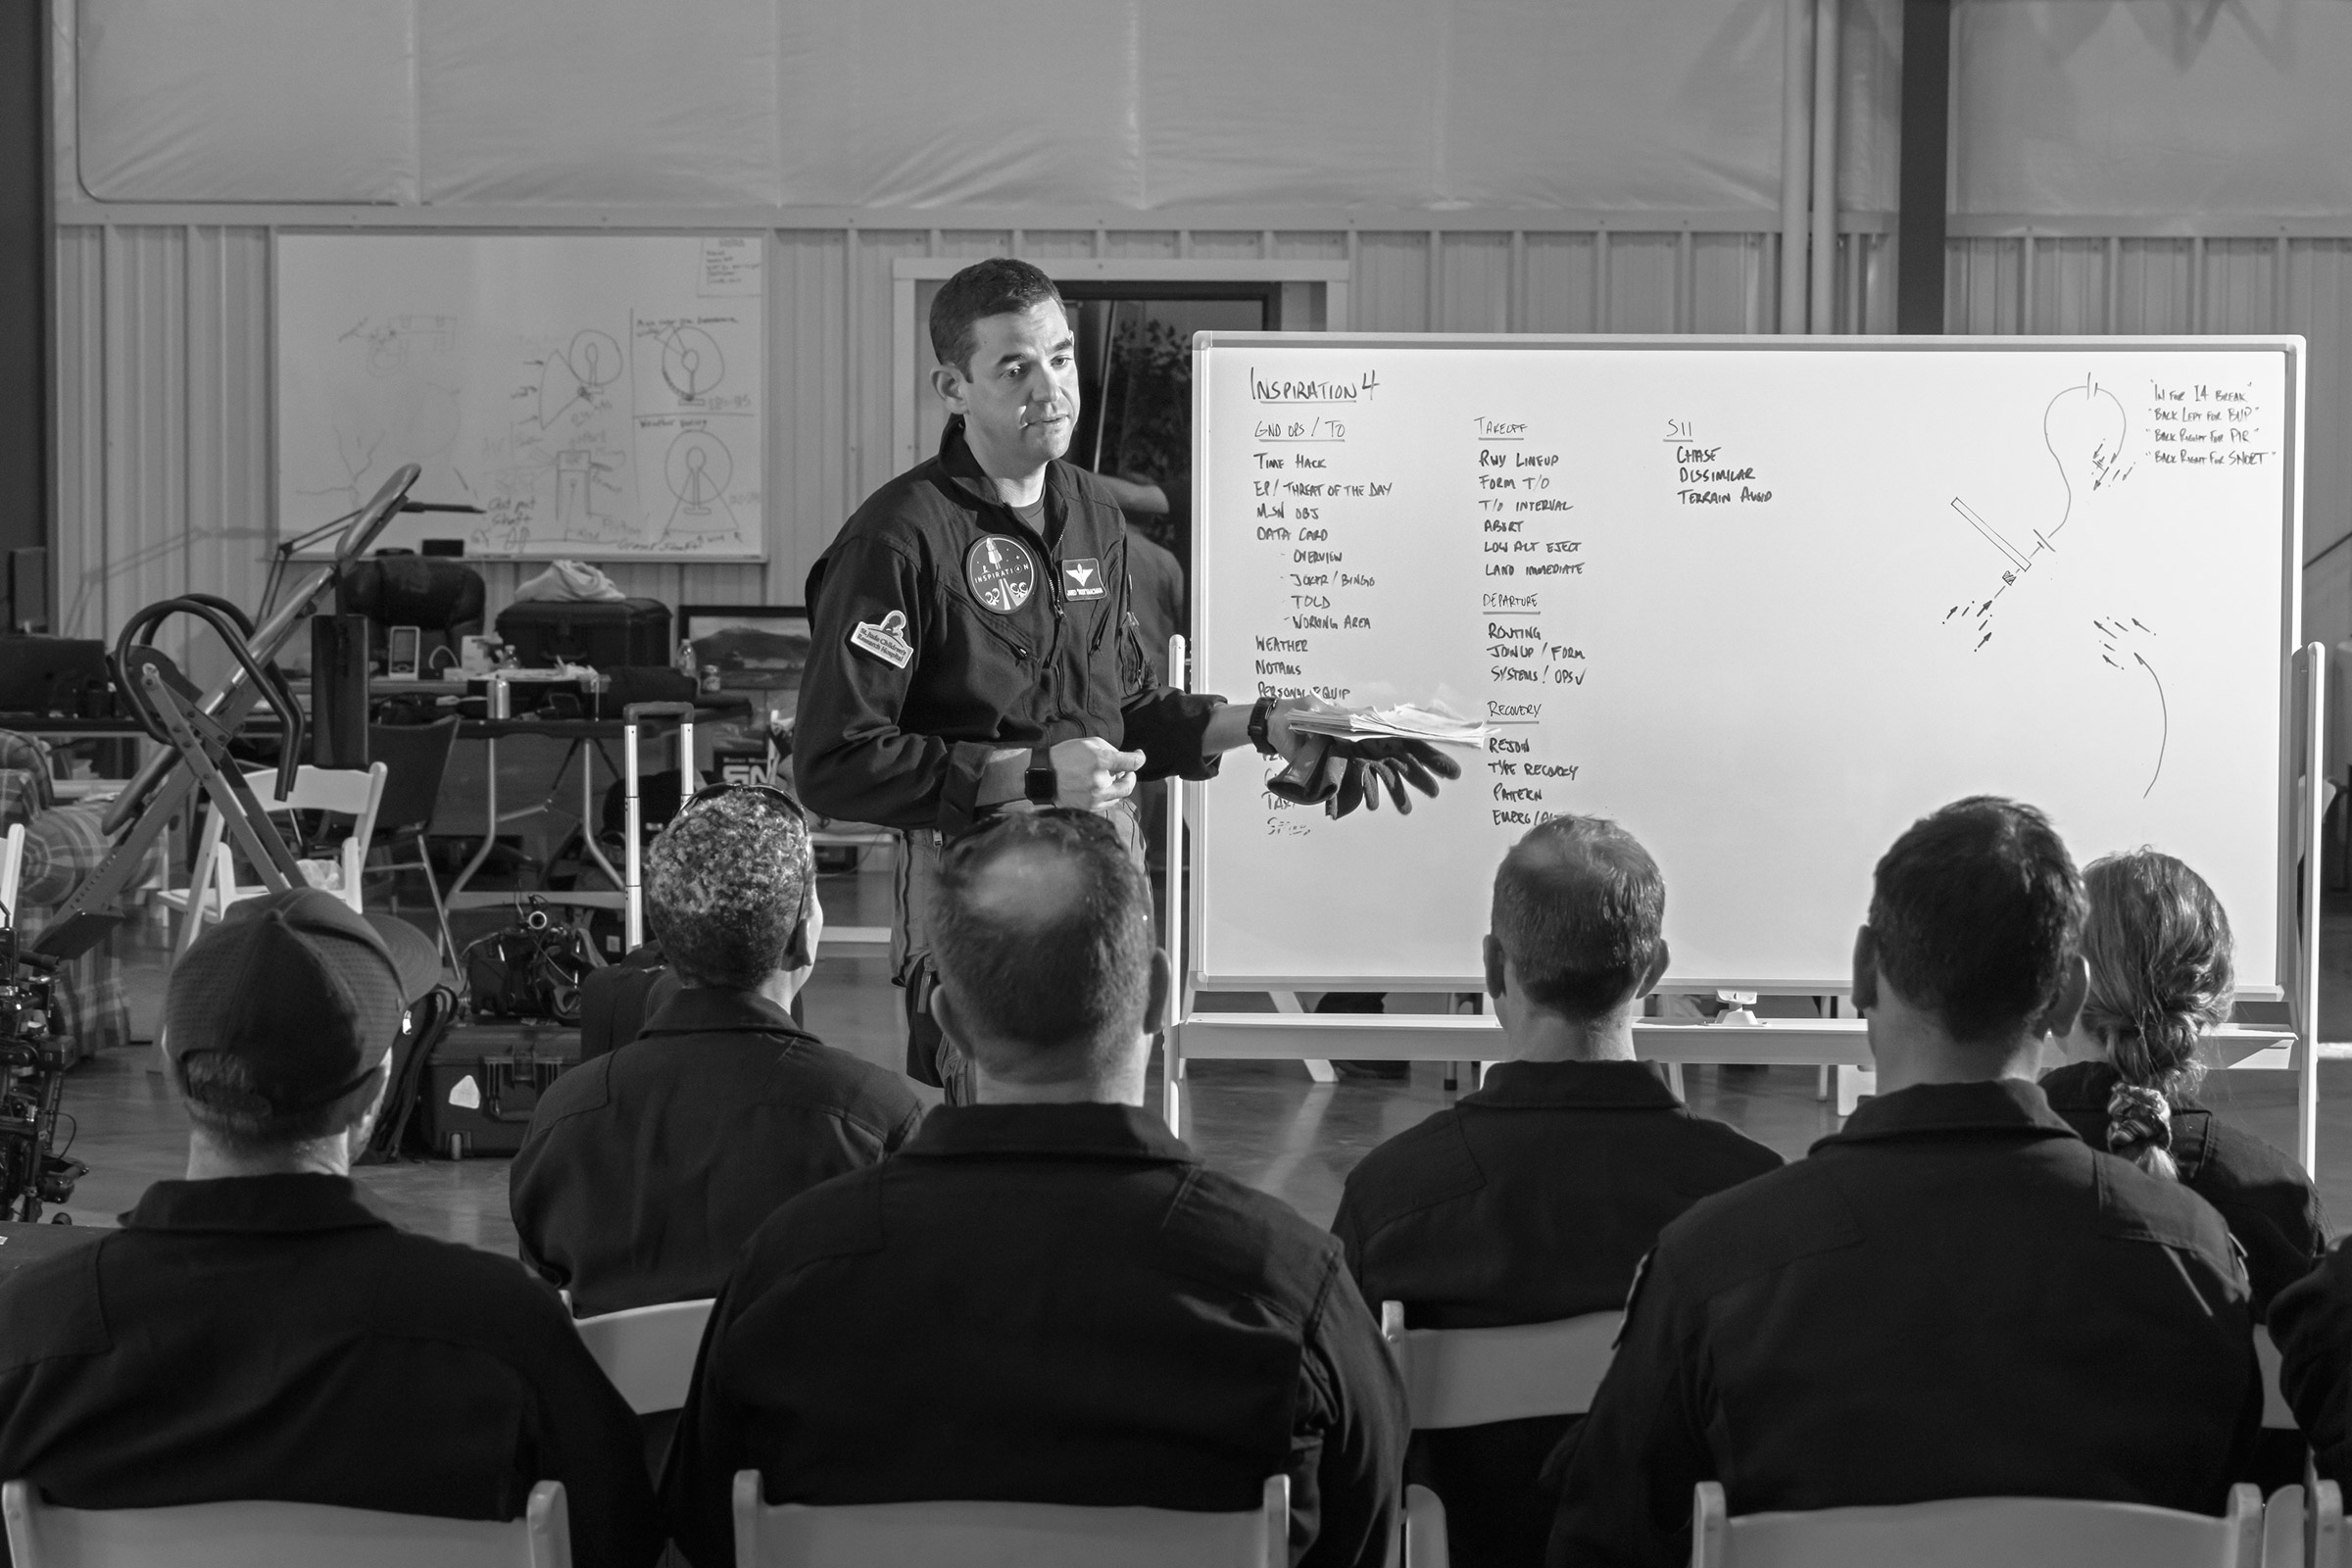 Jared Isaacman briefs the Inspiration4 crew before a training session in Belgrade, Mont., on Aug. 7, 2021.